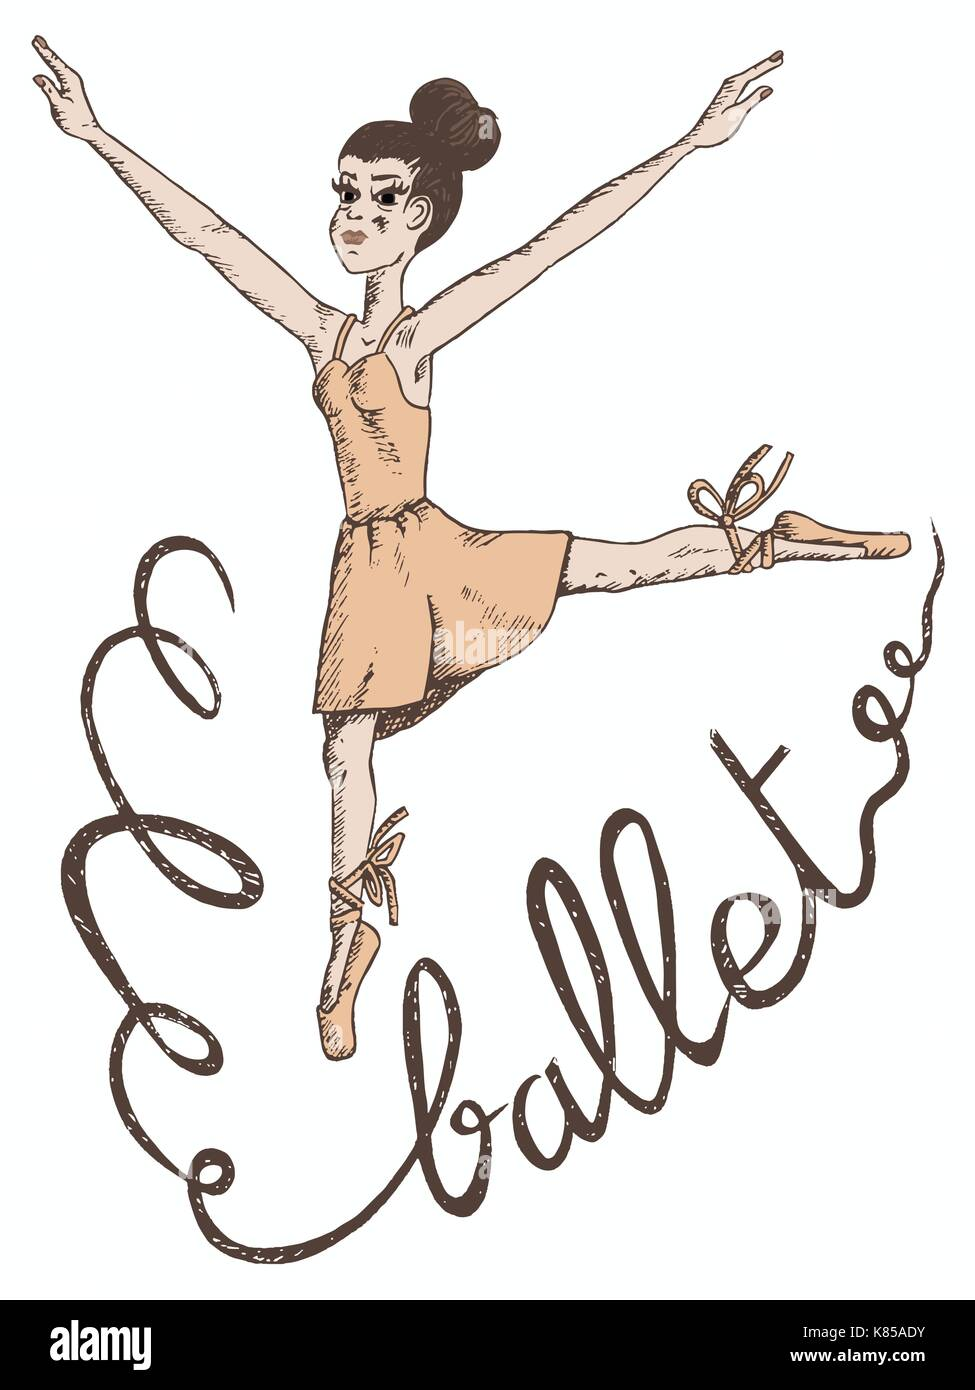 vector hand drawn illustration of a woman ballet dancer with ballet written in ribbon - Stock Vector